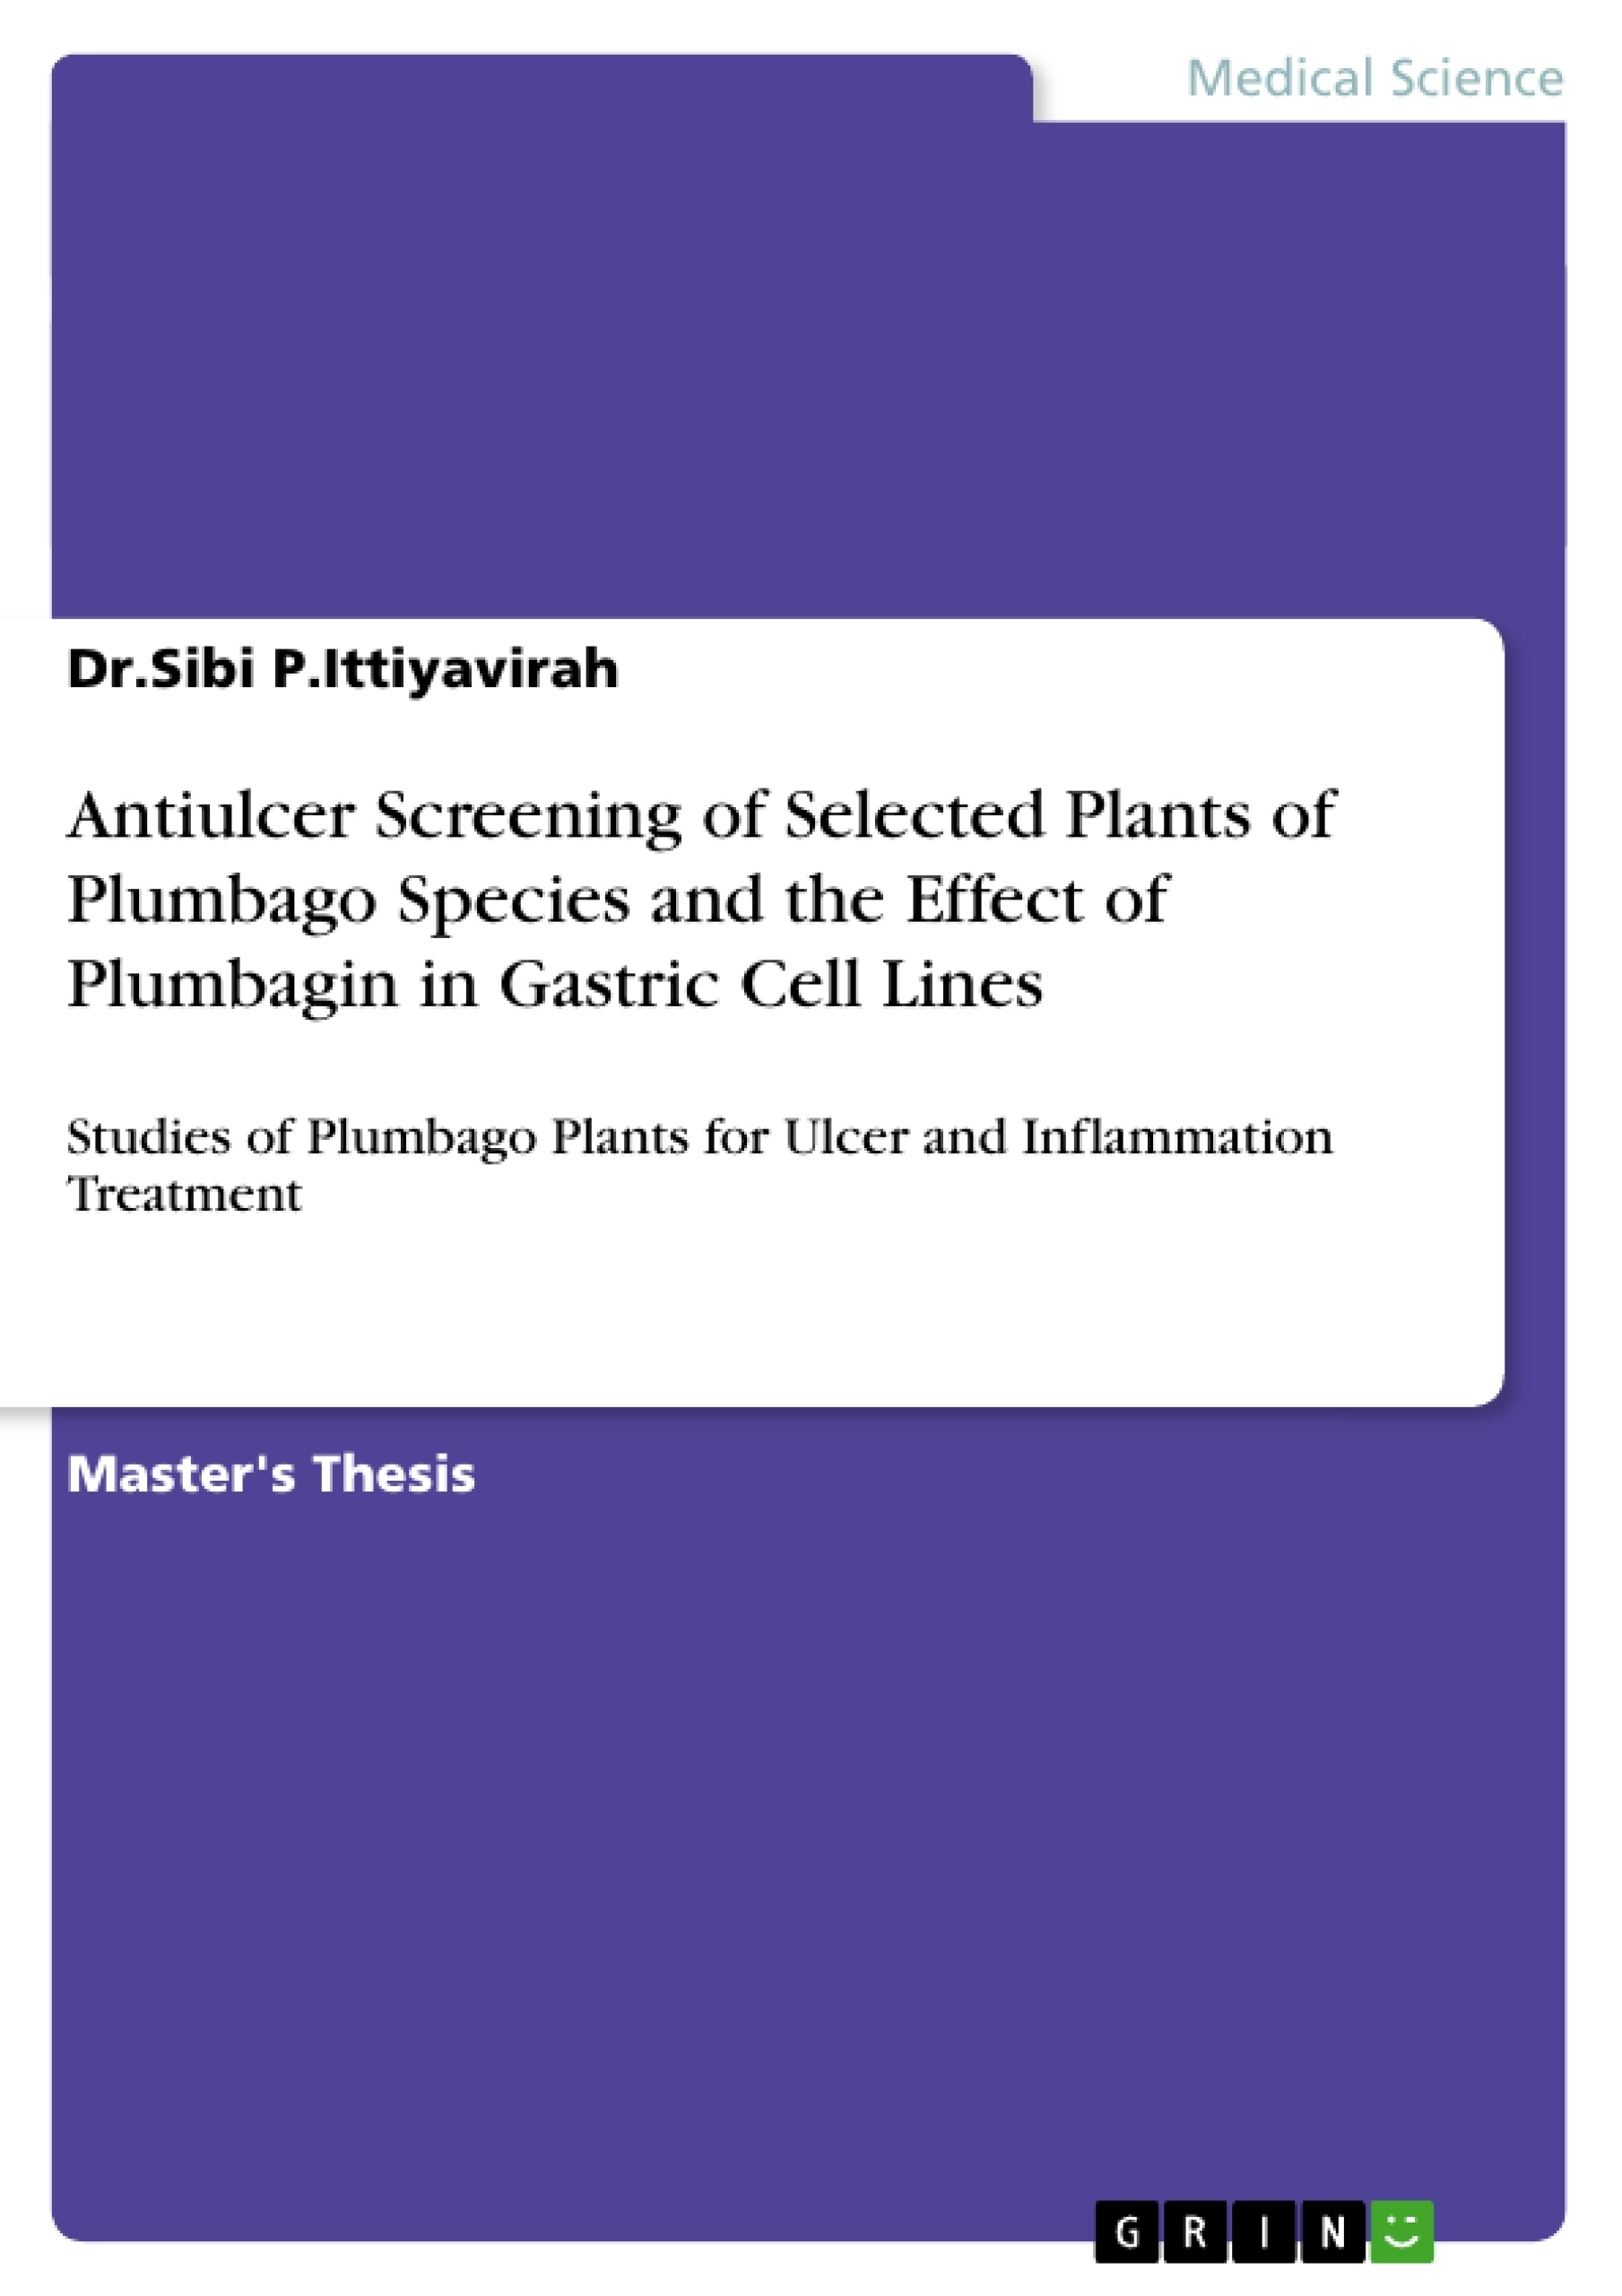 Title: Antiulcer Screening of Selected Plants of Plumbago Species and the Effect of Plumbagin in Gastric Cell Lines